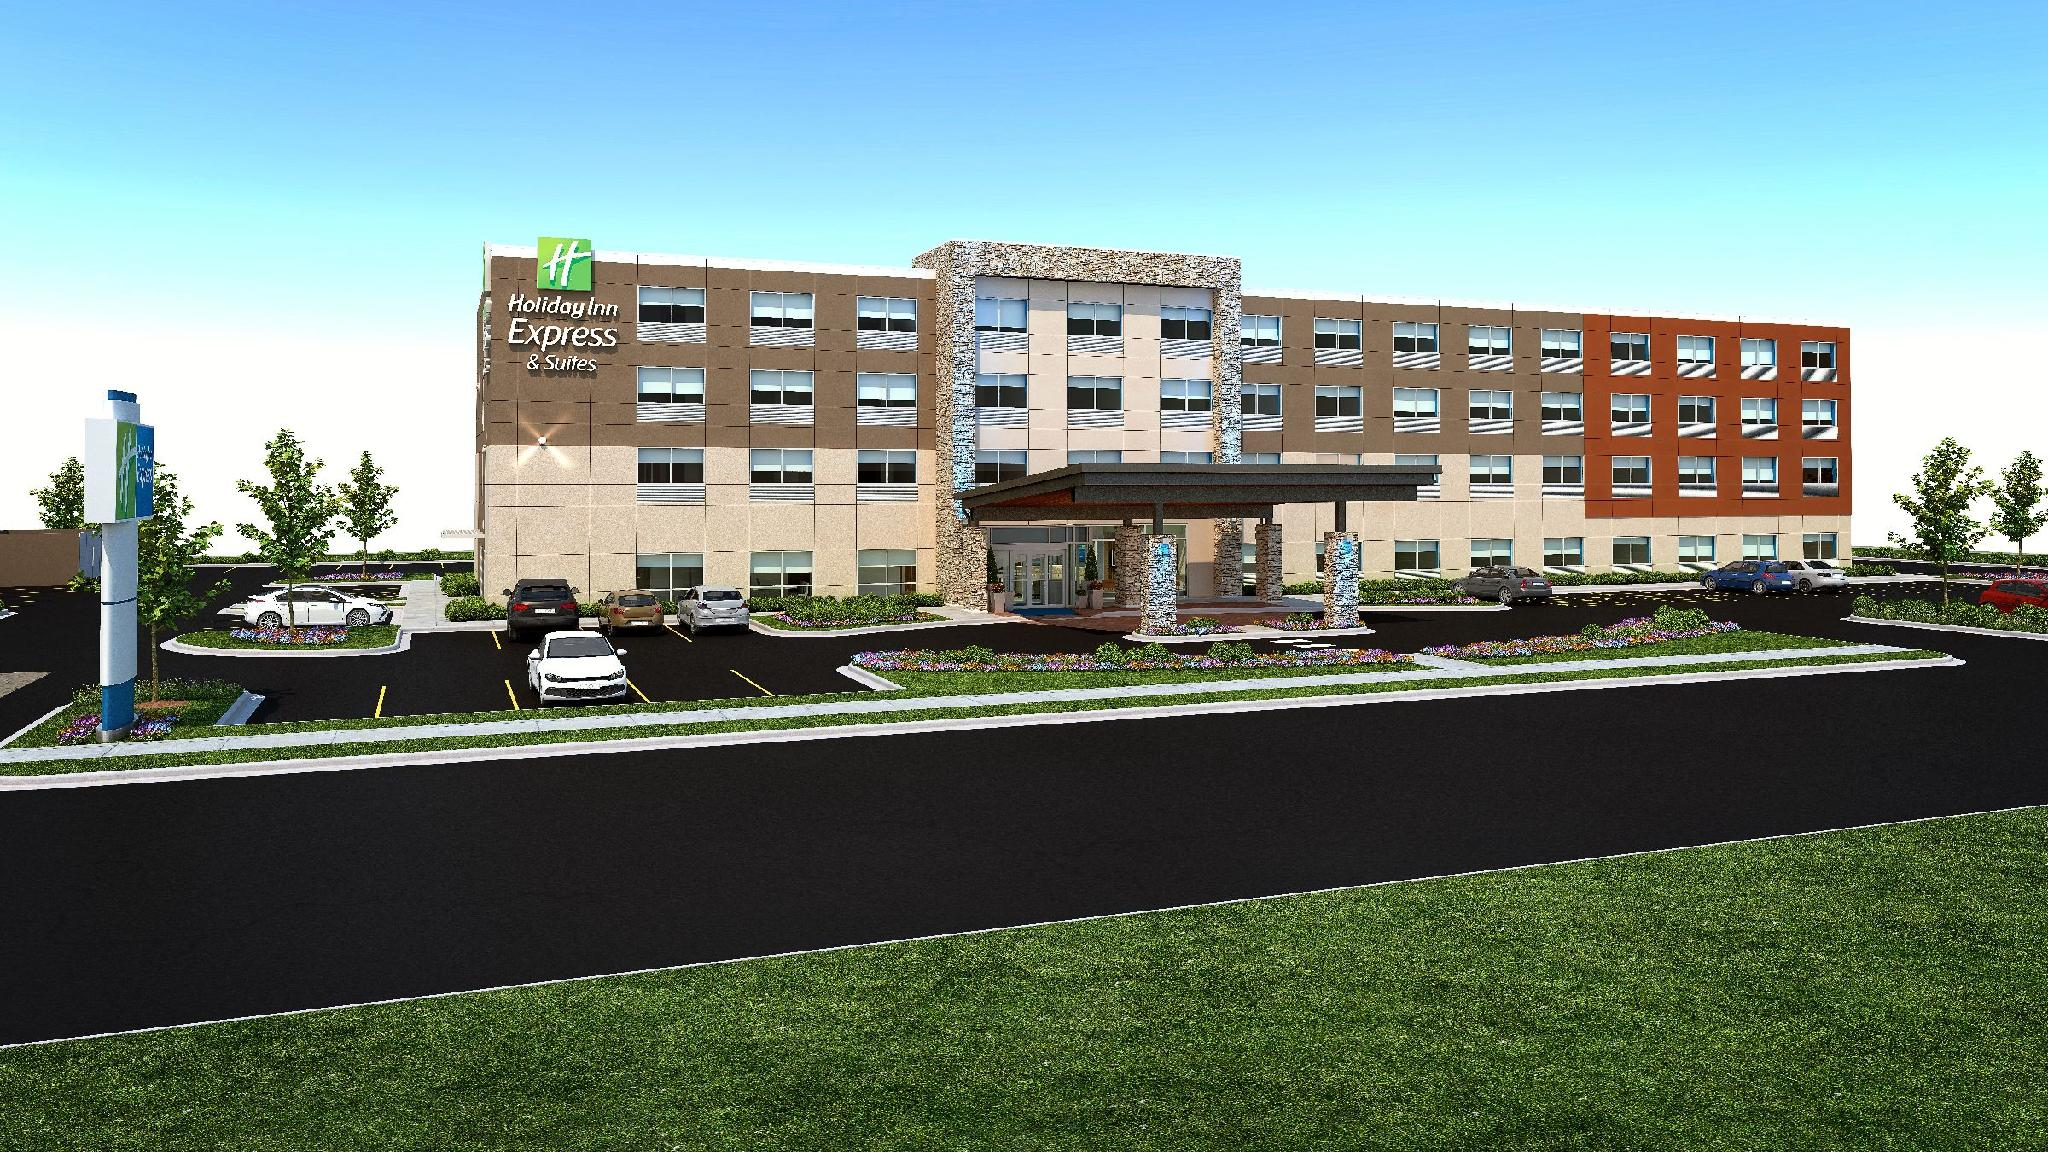 Holiday Inn Express And Suites   Charlotte Airport